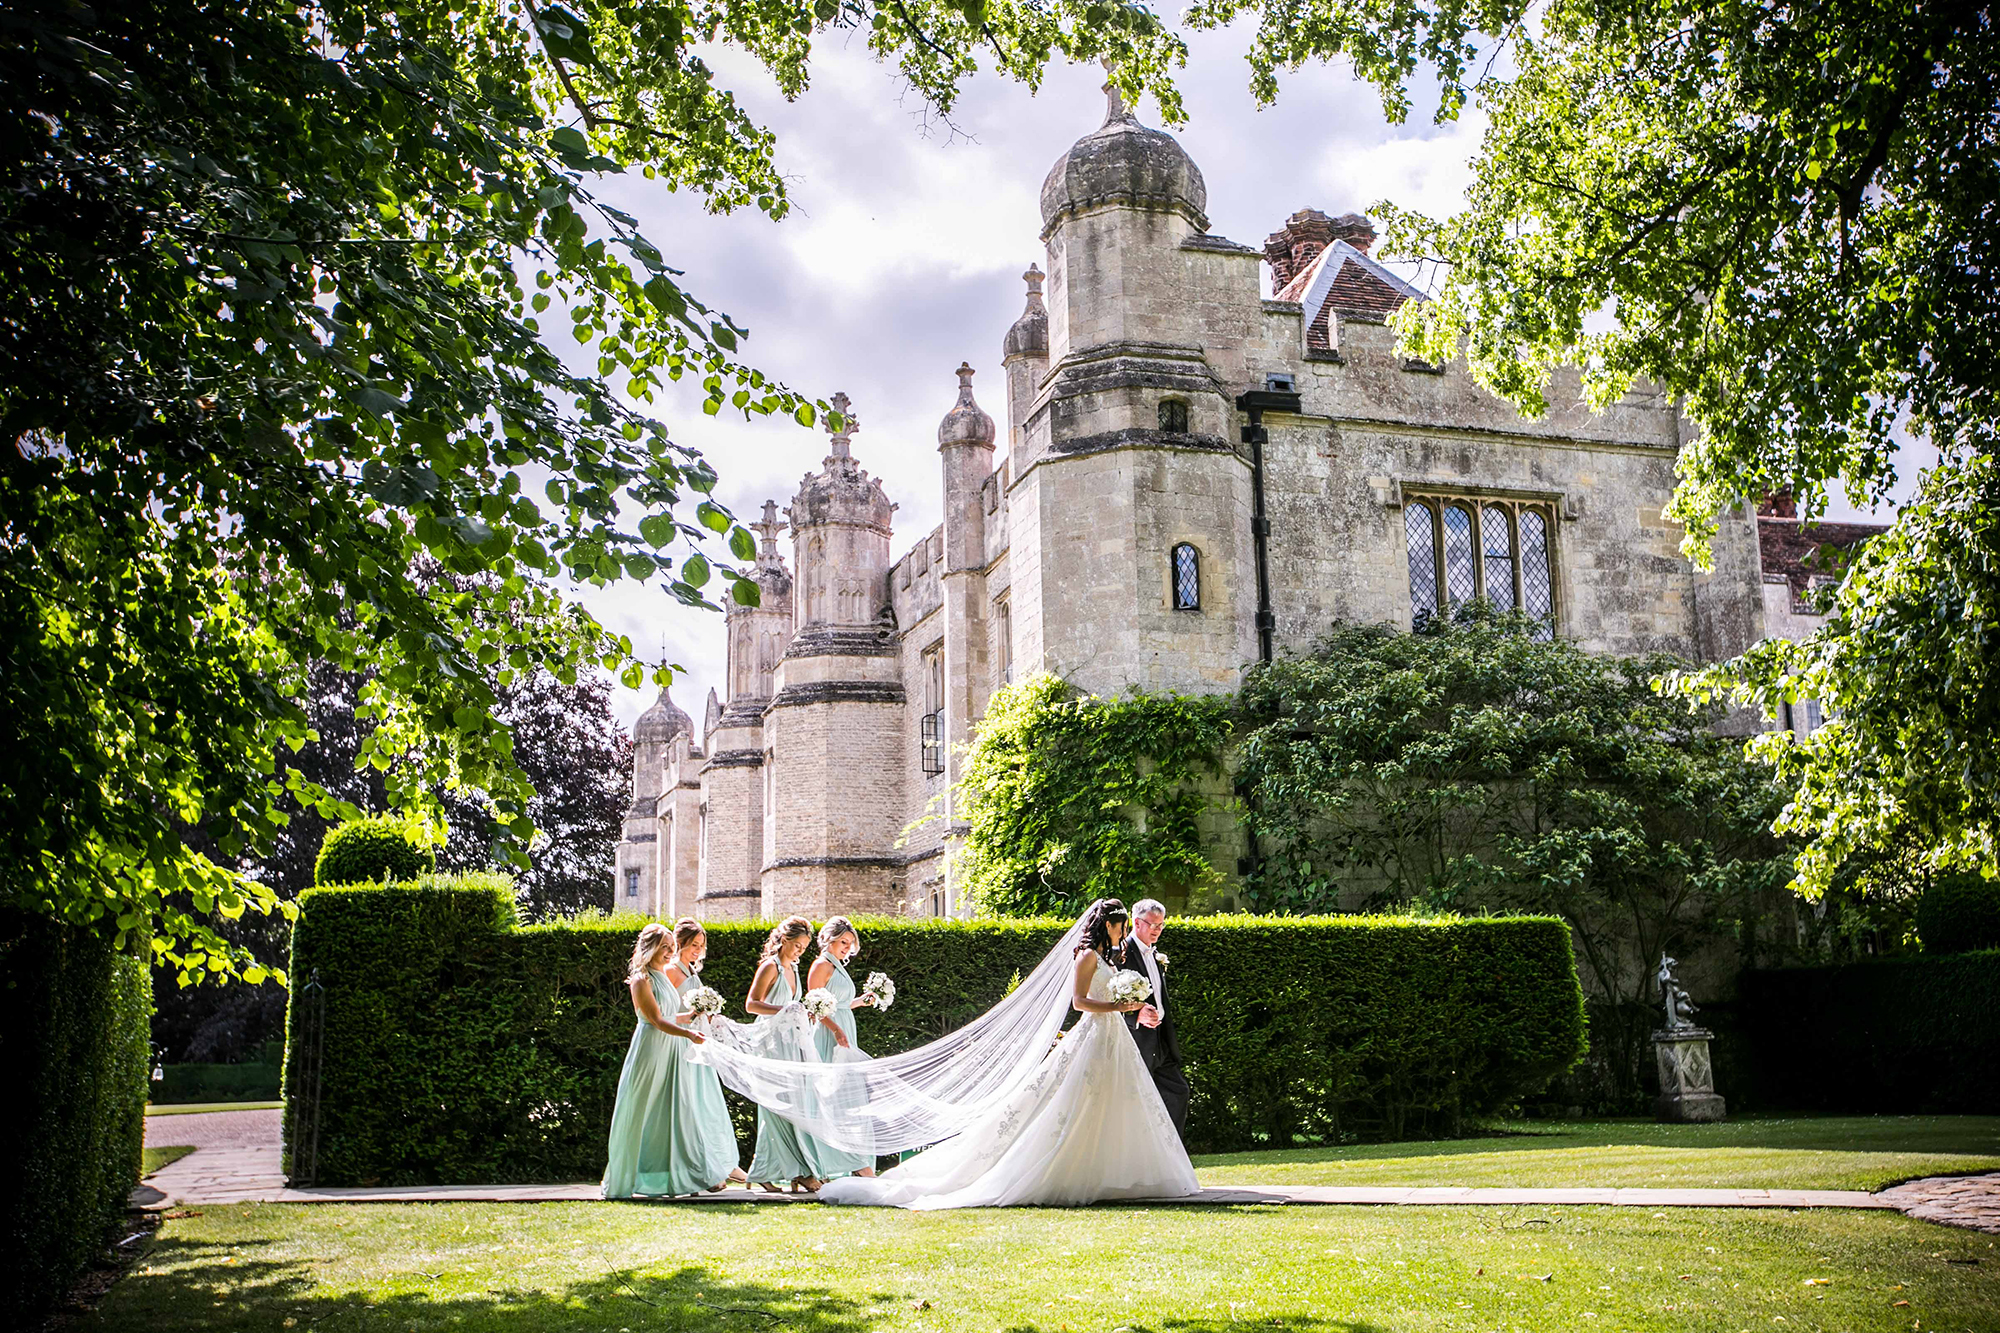 The bride, brides father and bridesmaids in the gardens of Hengrave Hall